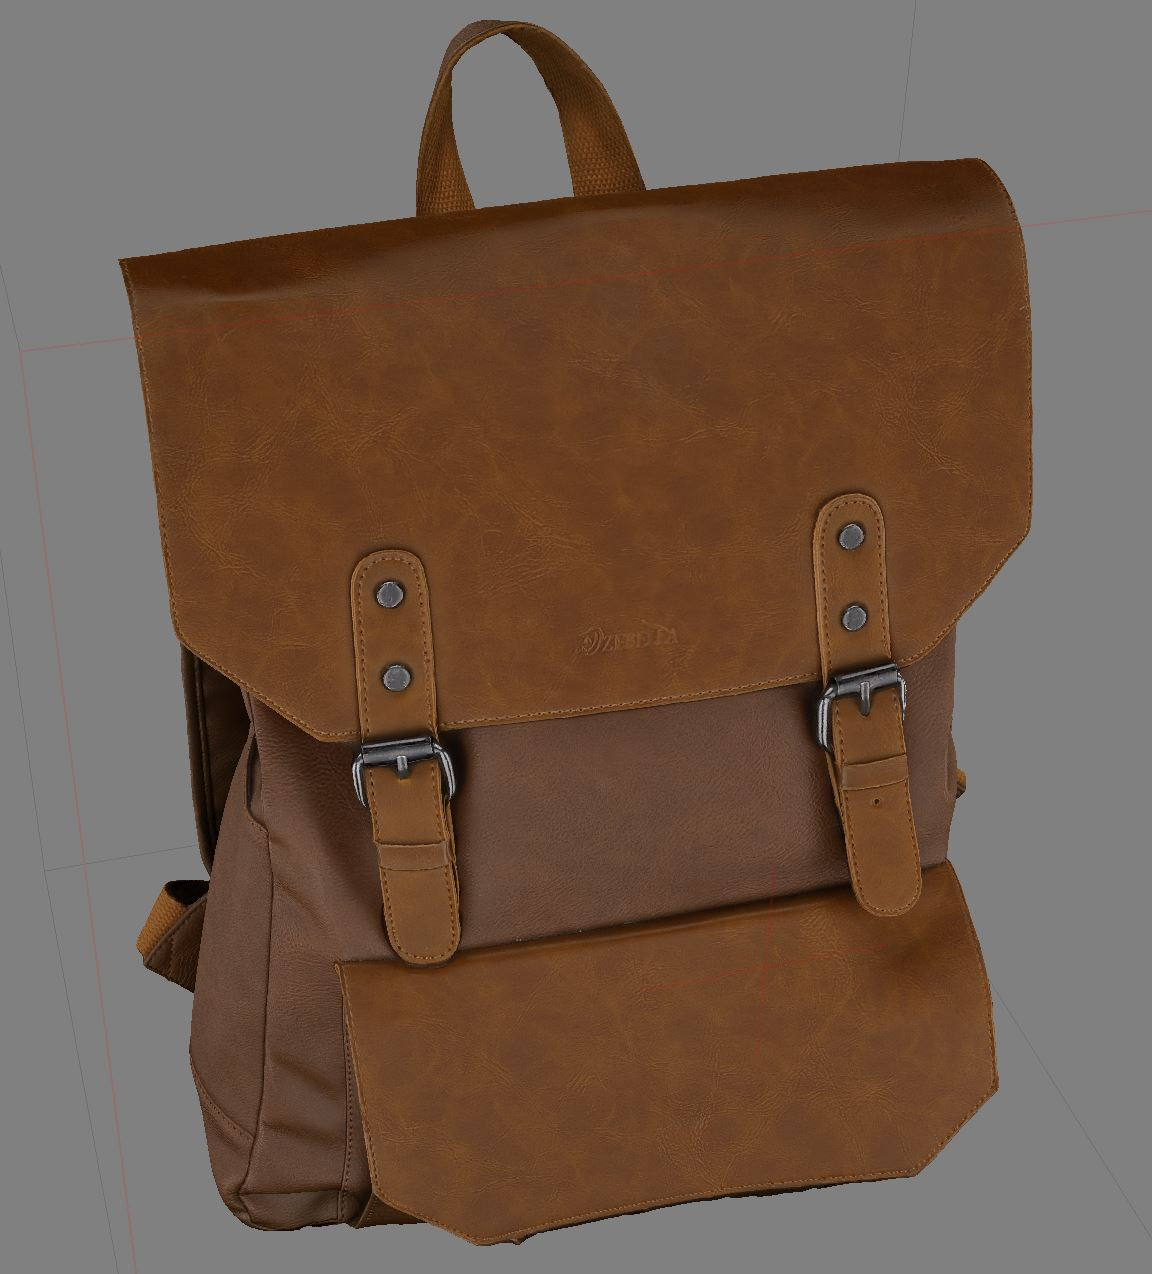 Backpack_001_01.JPG